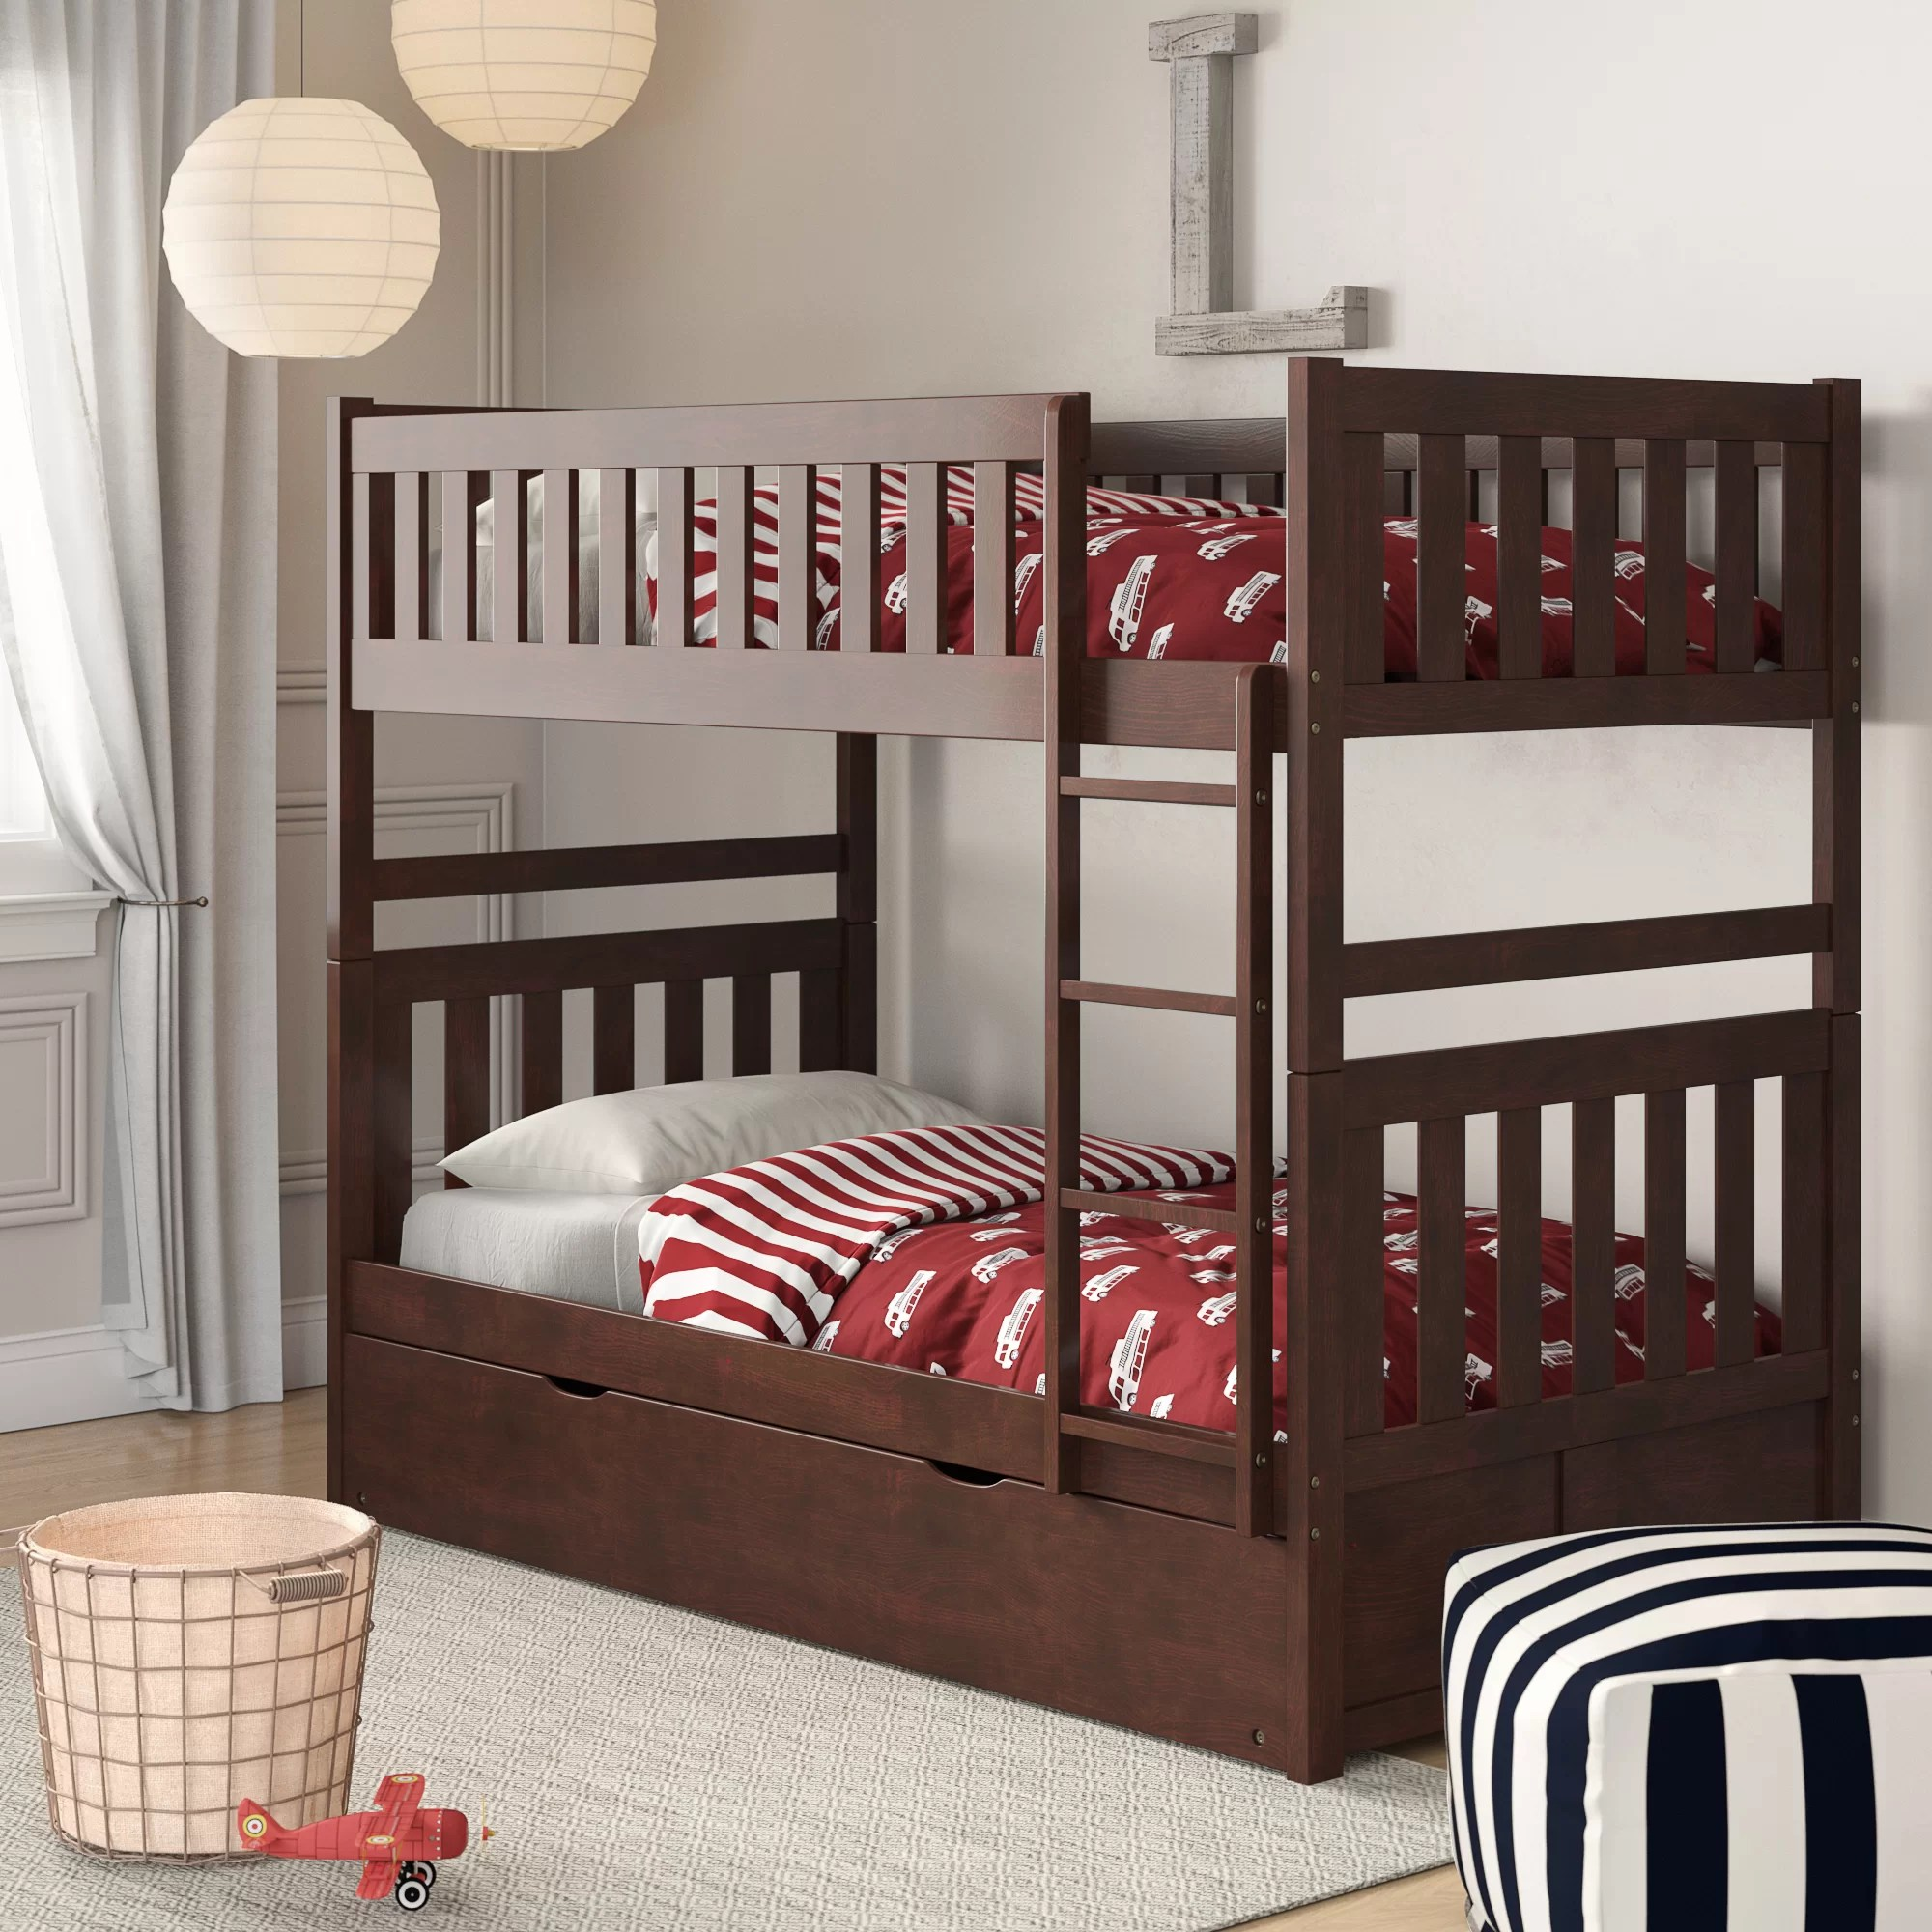 Snooze Bunk Beds Bradninch Bunk Bed With Trundle